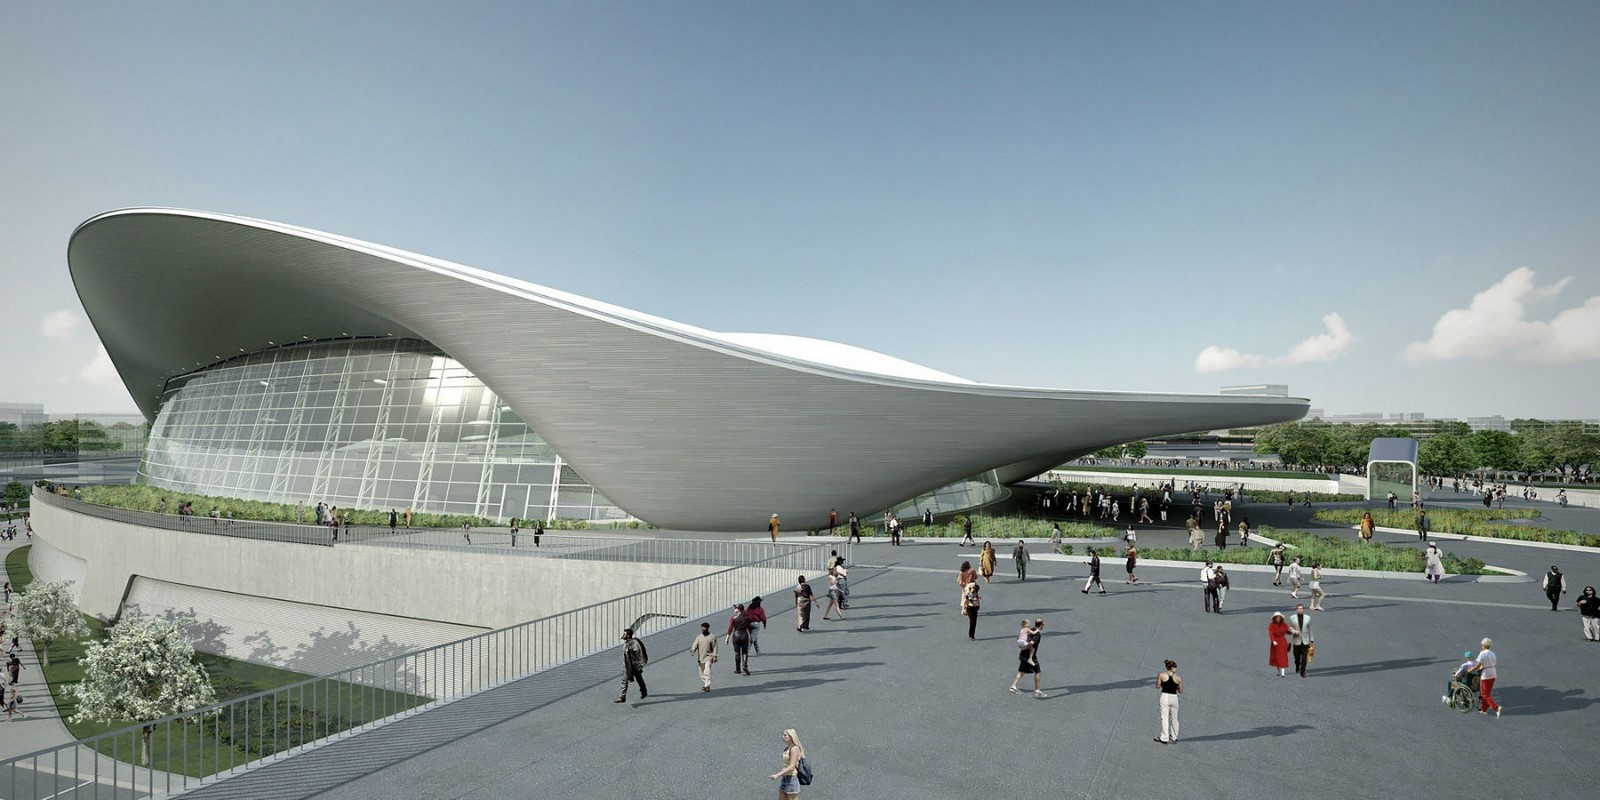 London Aquatics Centre by Zaha Hadid Architects- Architecture inspired by water - Sheet2